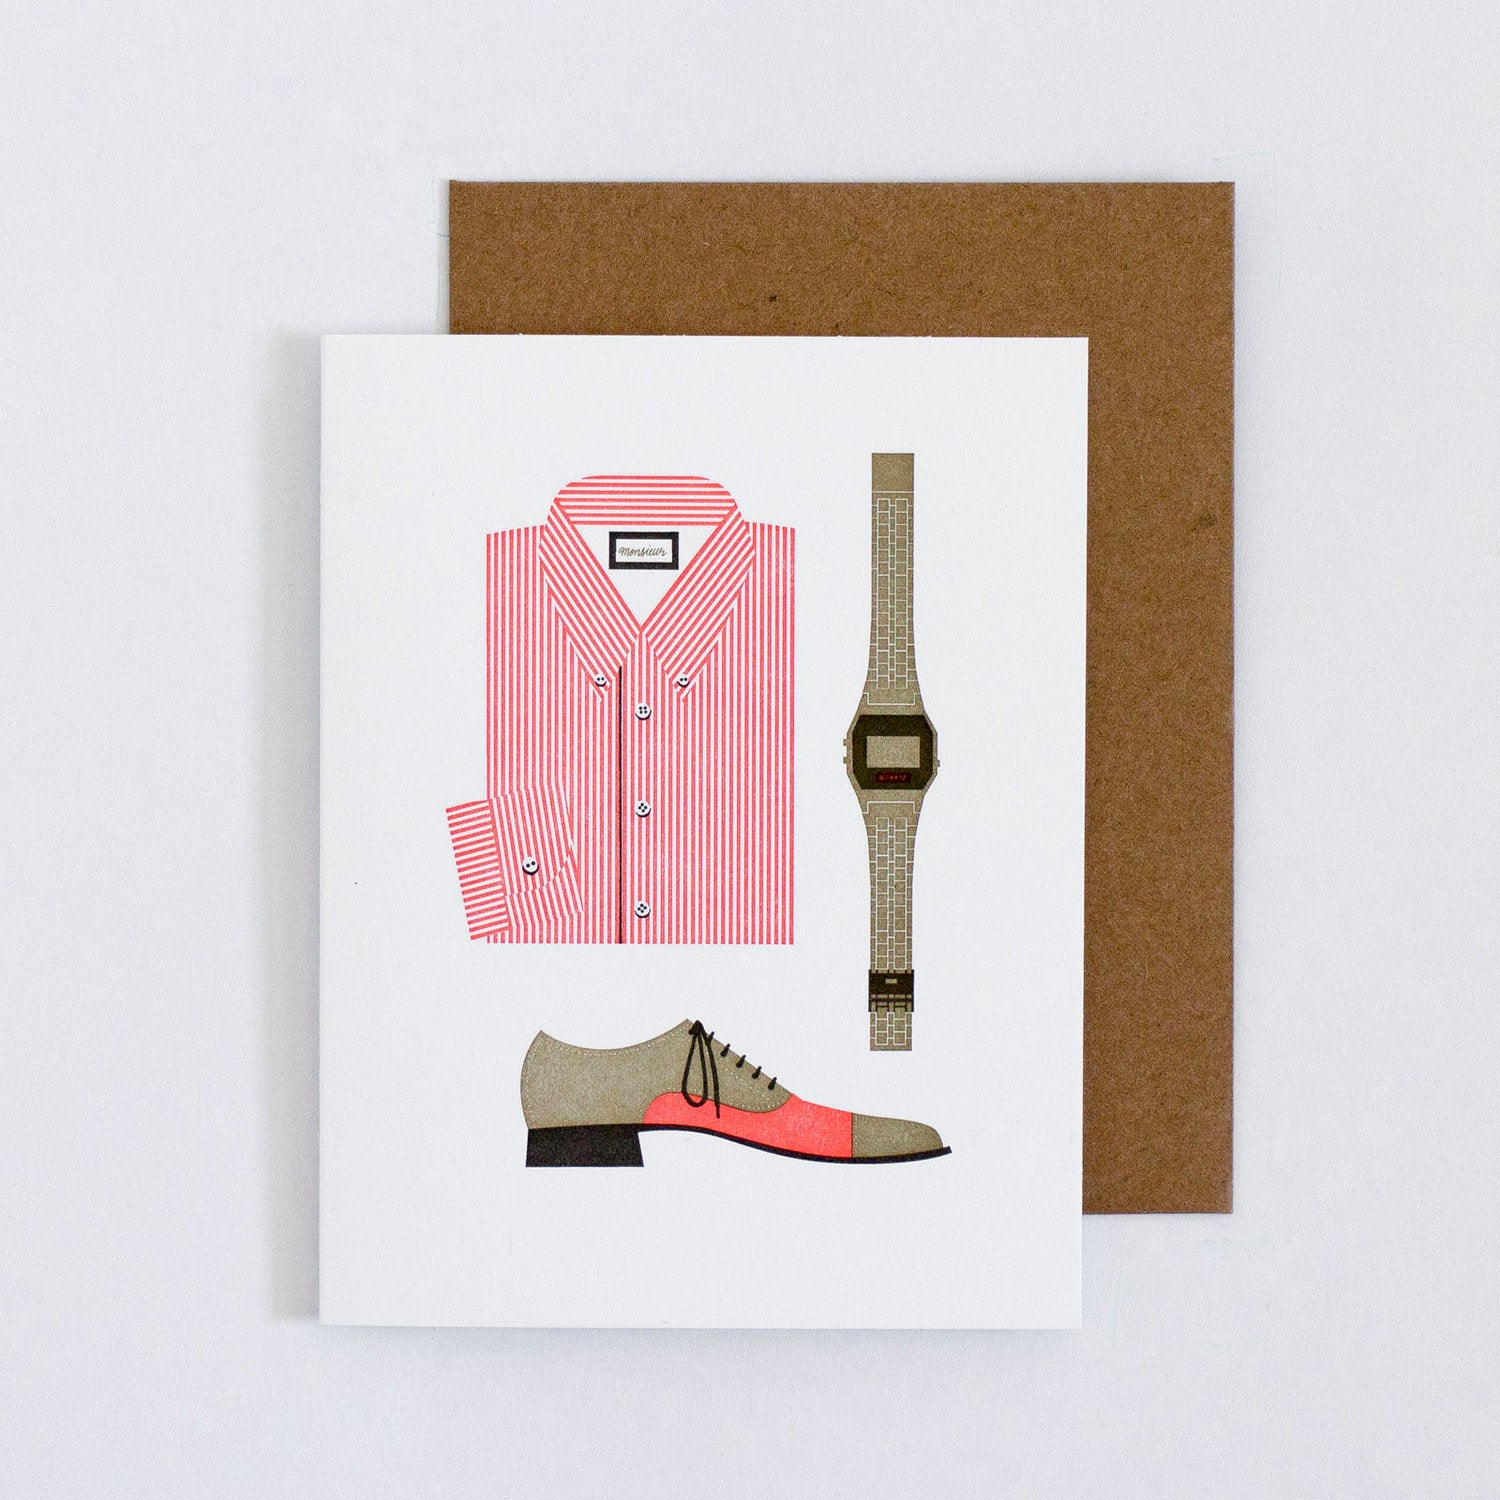 Oxford Shirt, Wingtips, Casio Card